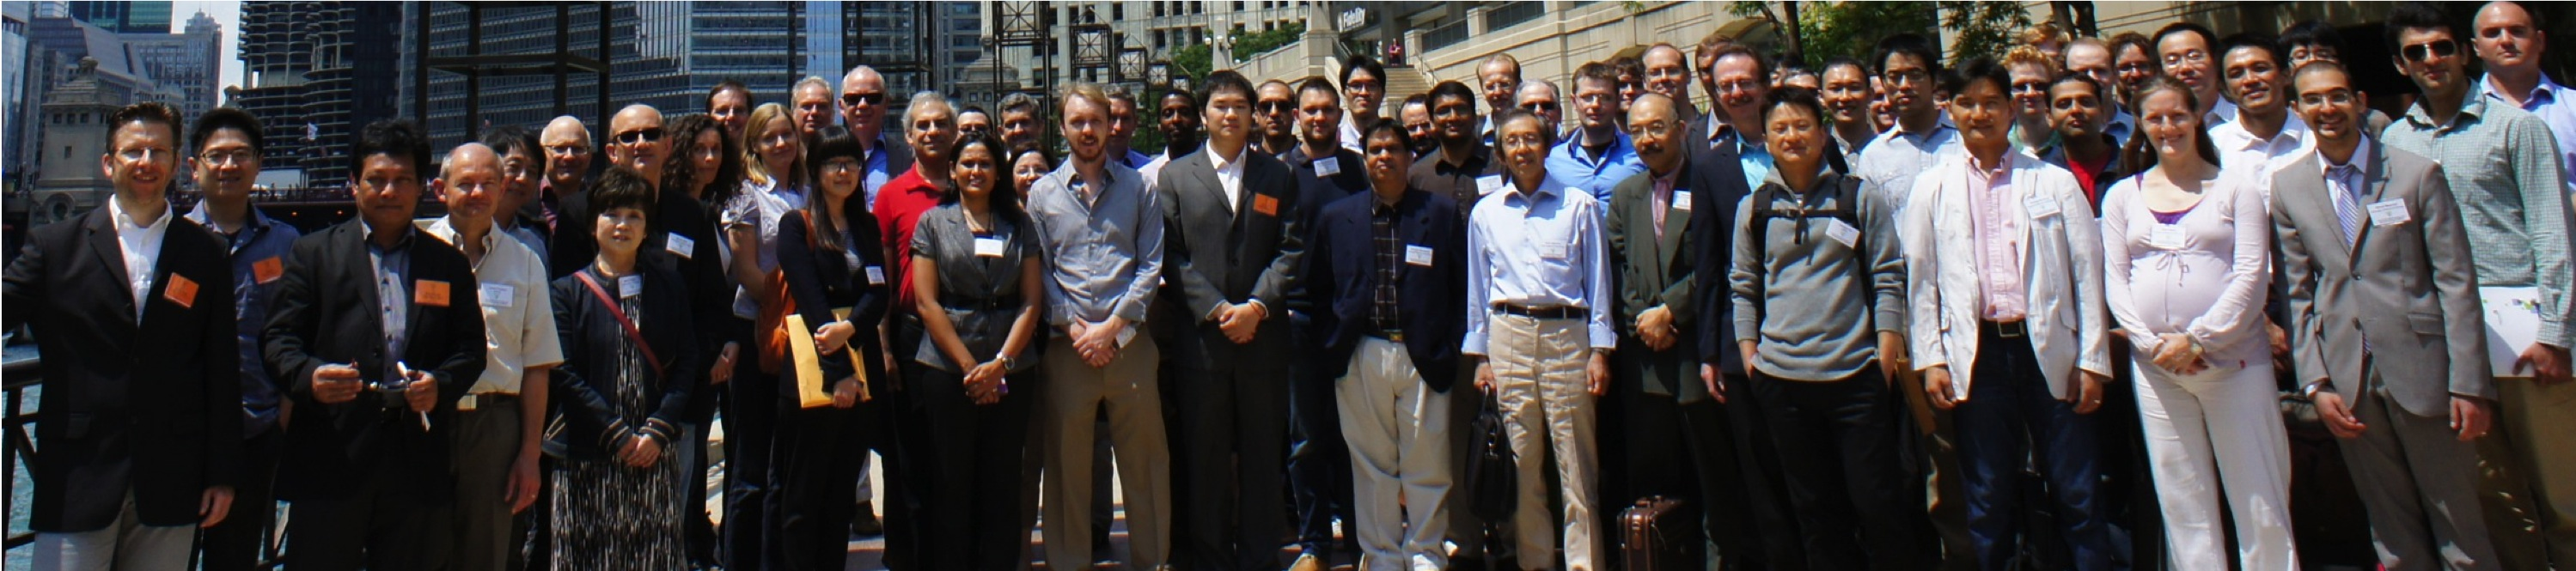 NSS-8 Nanoscale Conference in Chicago Group Photo